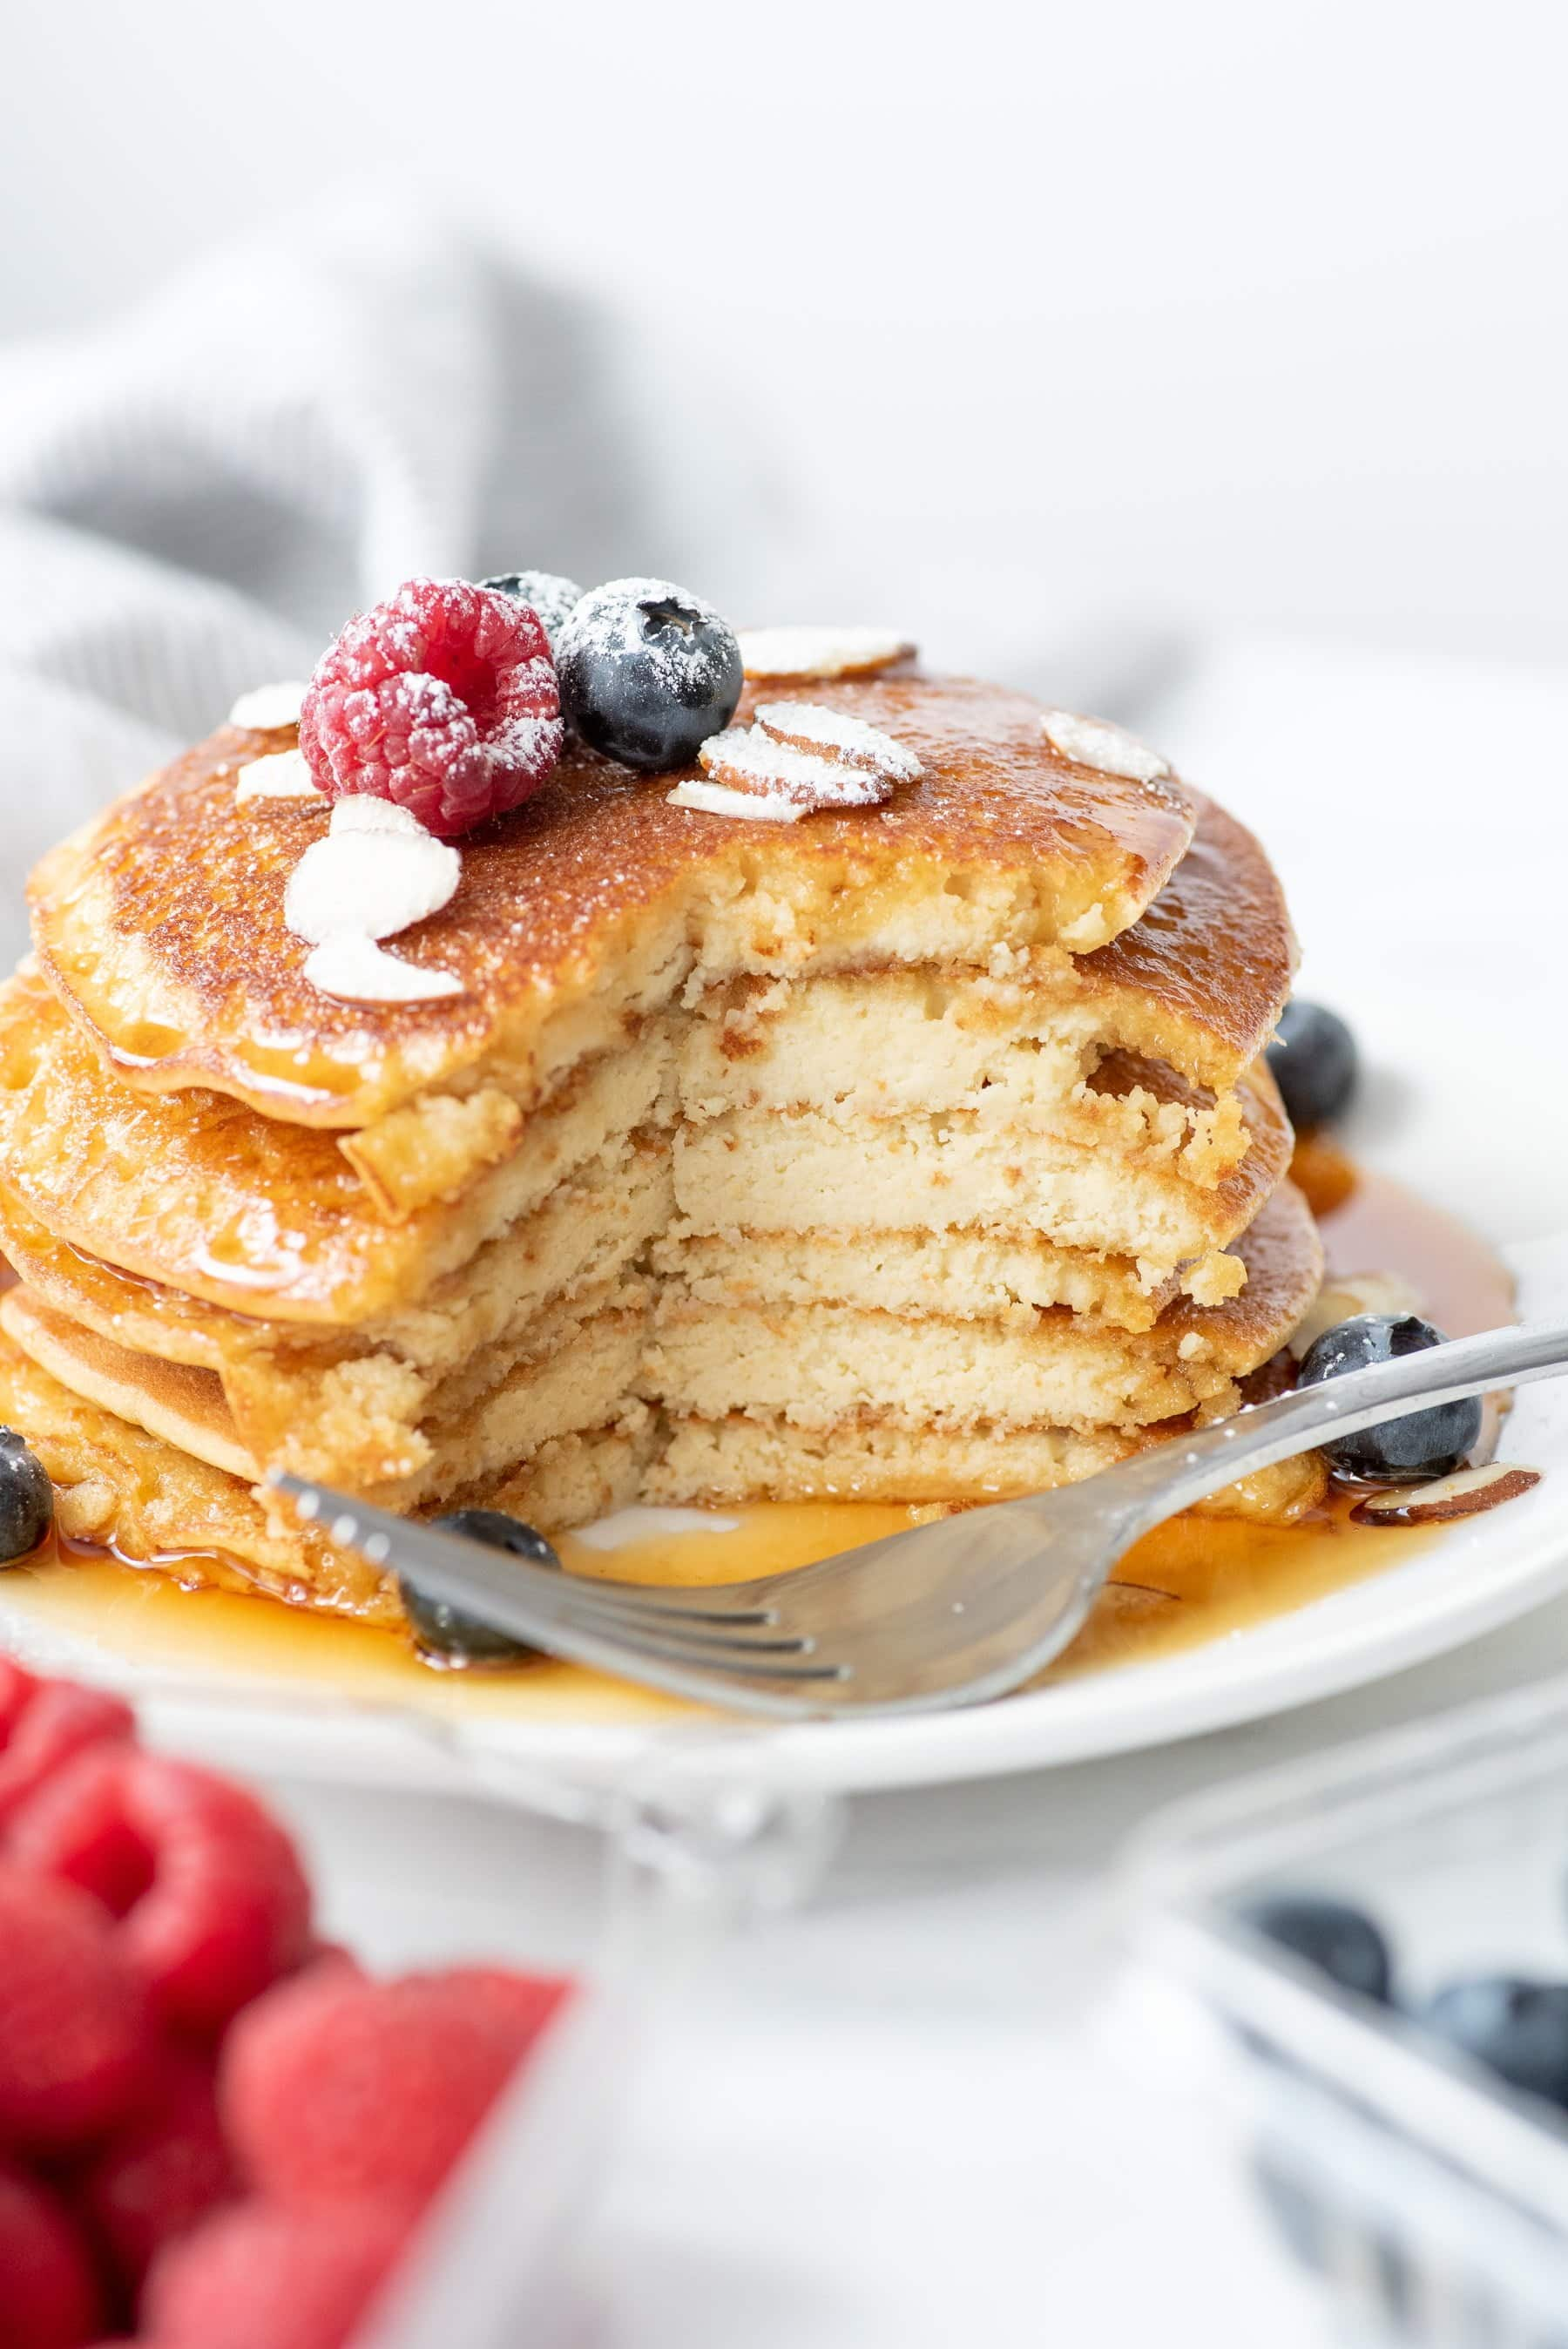 Side shot of a stack of Grain-Free Blender Almond Pancakes, garnished with berries and almonds